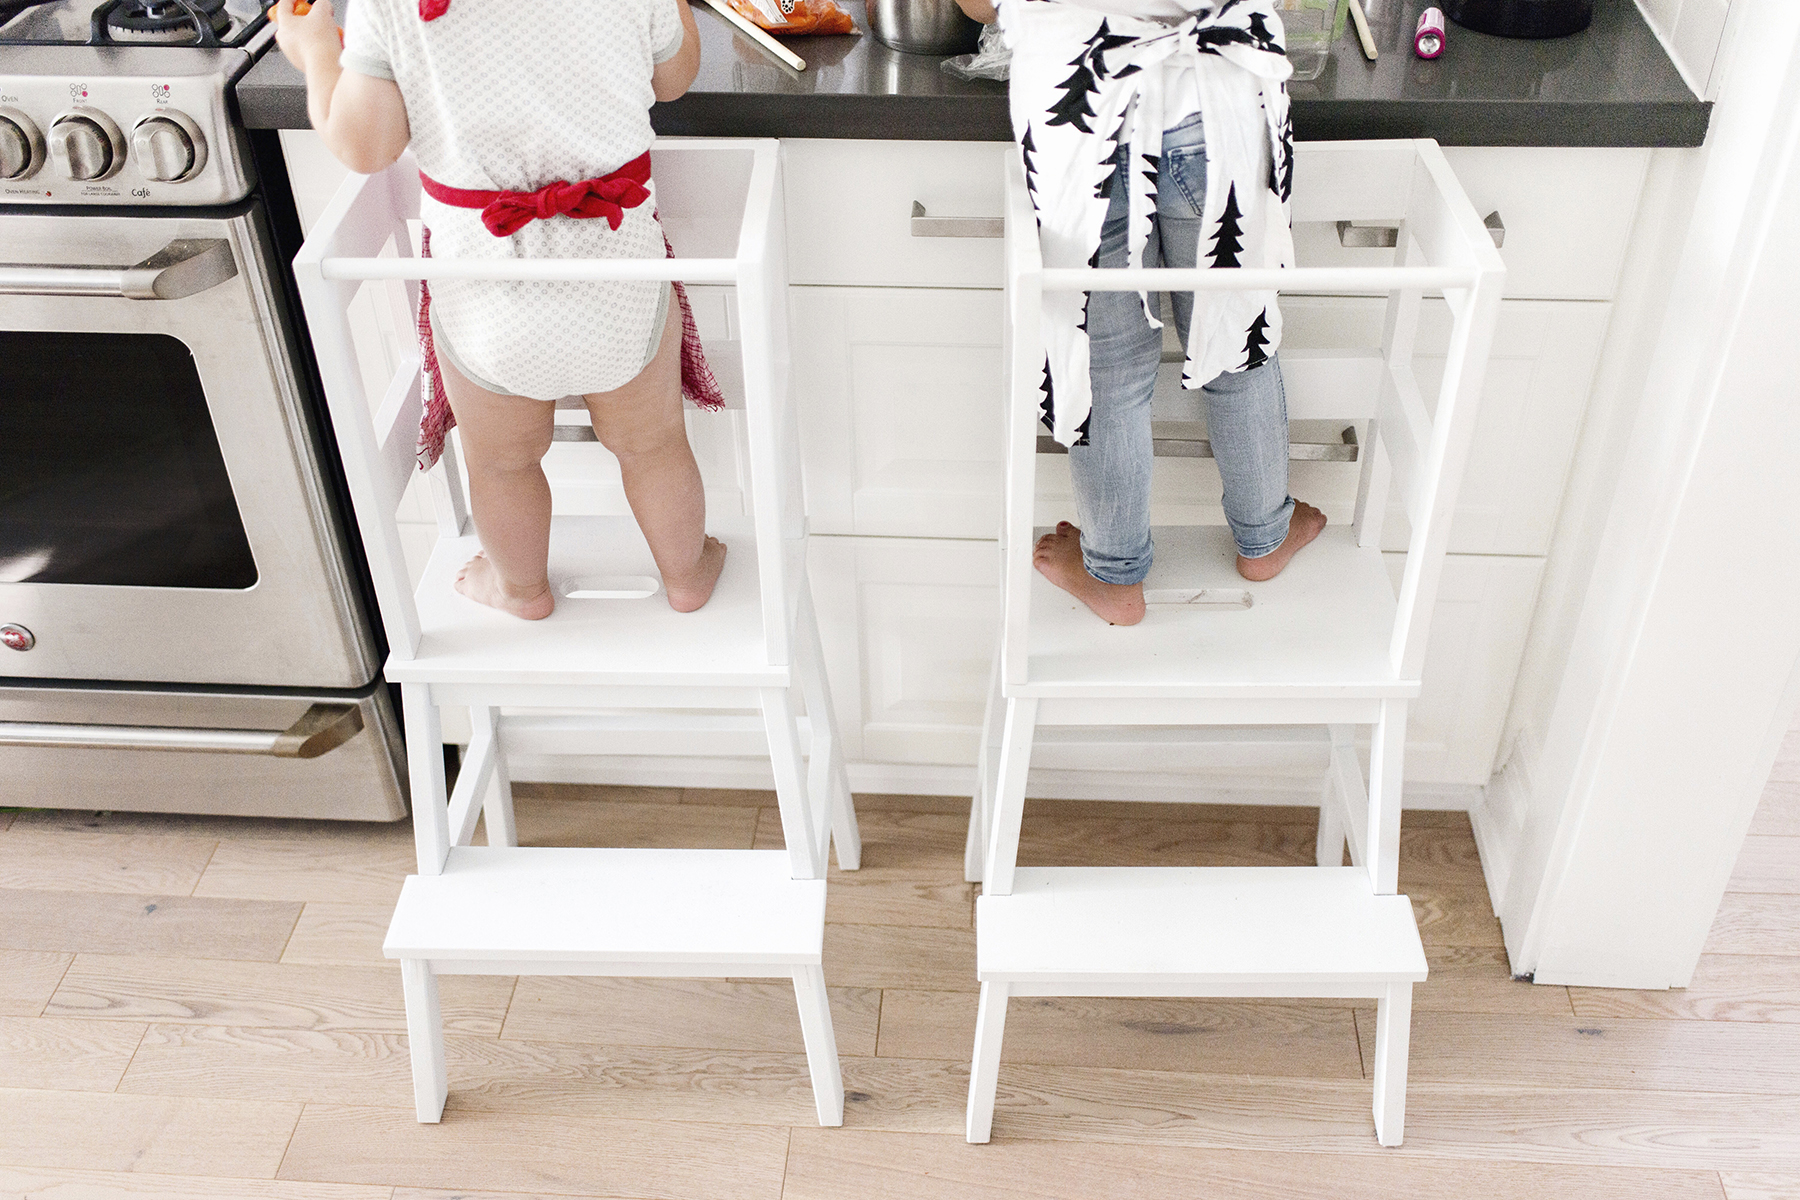 Ikea hack - toddler learning tower using a Bekväm stool | Tutorial | Happy Grey Lucky & Ikea Hack: Toddler Learning Tower Stool | Happy Grey Lucky islam-shia.org